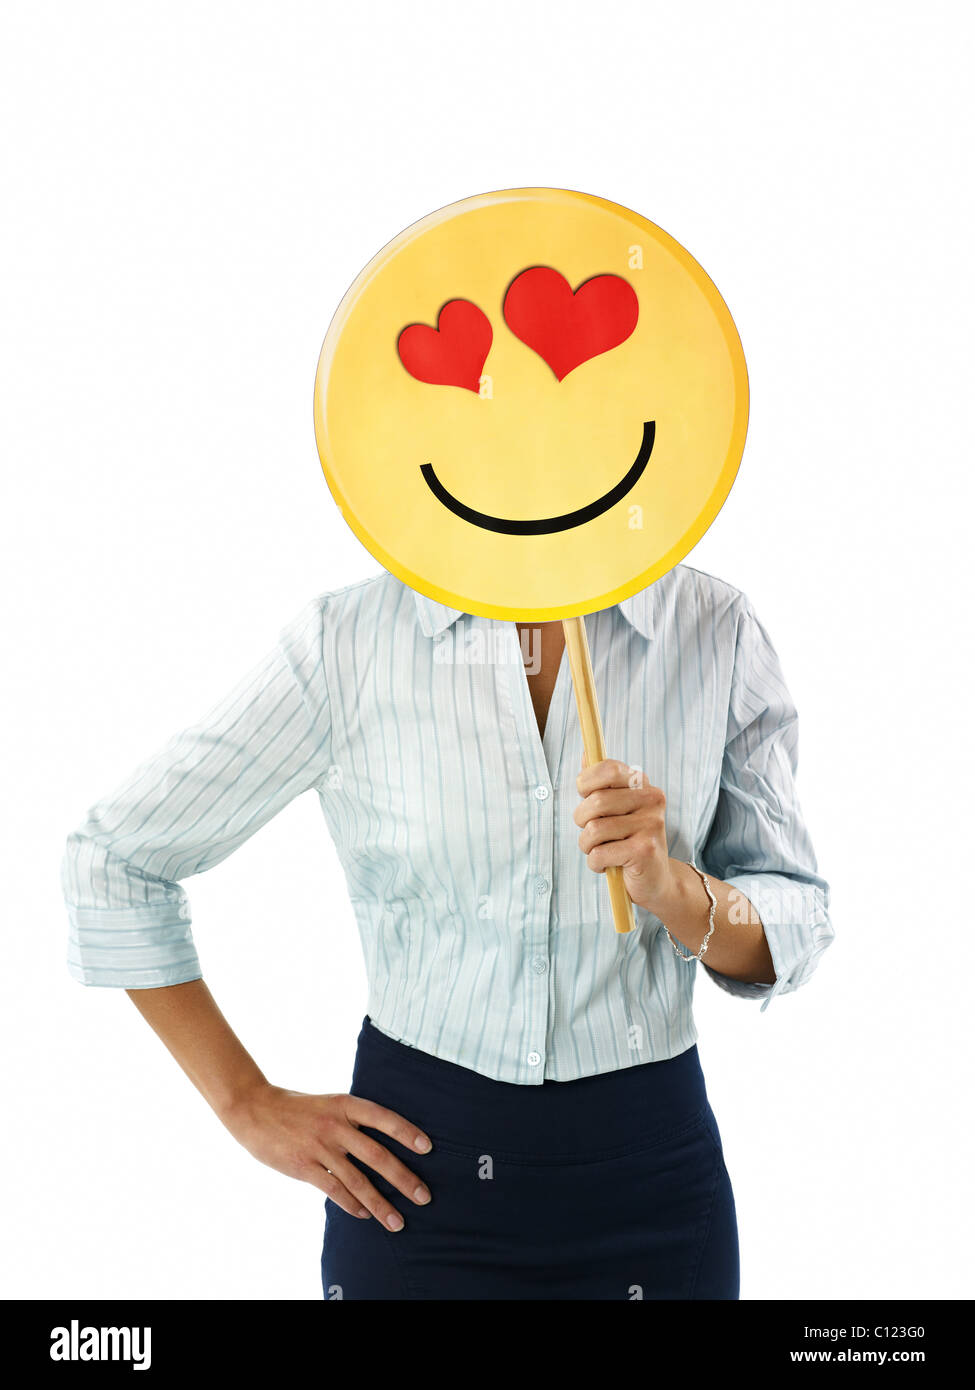 adult business woman holding emoticon with red hearts on white background. Vertical shape, front view, waist up Stock Photo